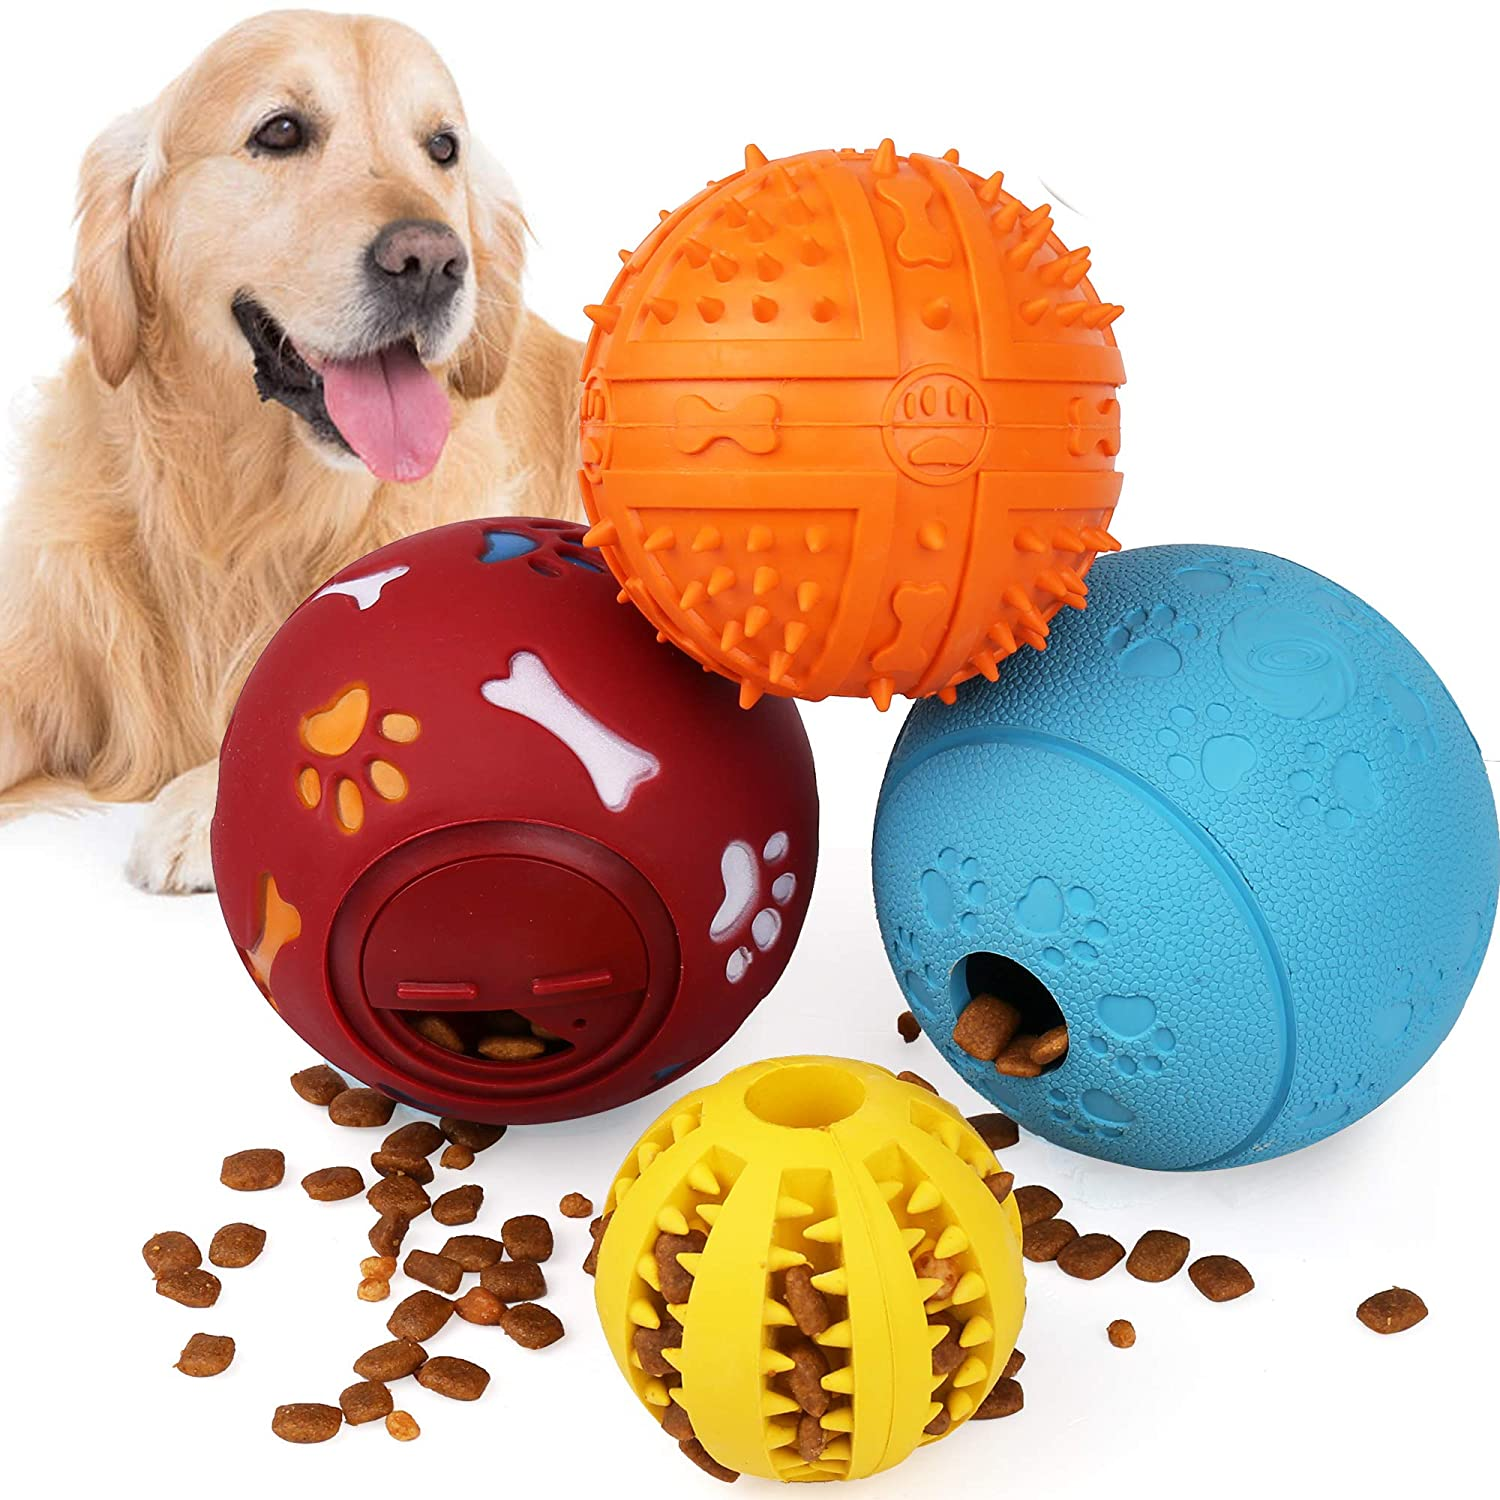 4Pack IQ Treat Ball, Interactive Food Dispensing Dog Toys, Dog Ball Toys, Dog Chew Puzzle Toys, Non-Toxic Natural Rubber Dog Chew Ball Toys for Tooth Cleaning, Chewing, Playing